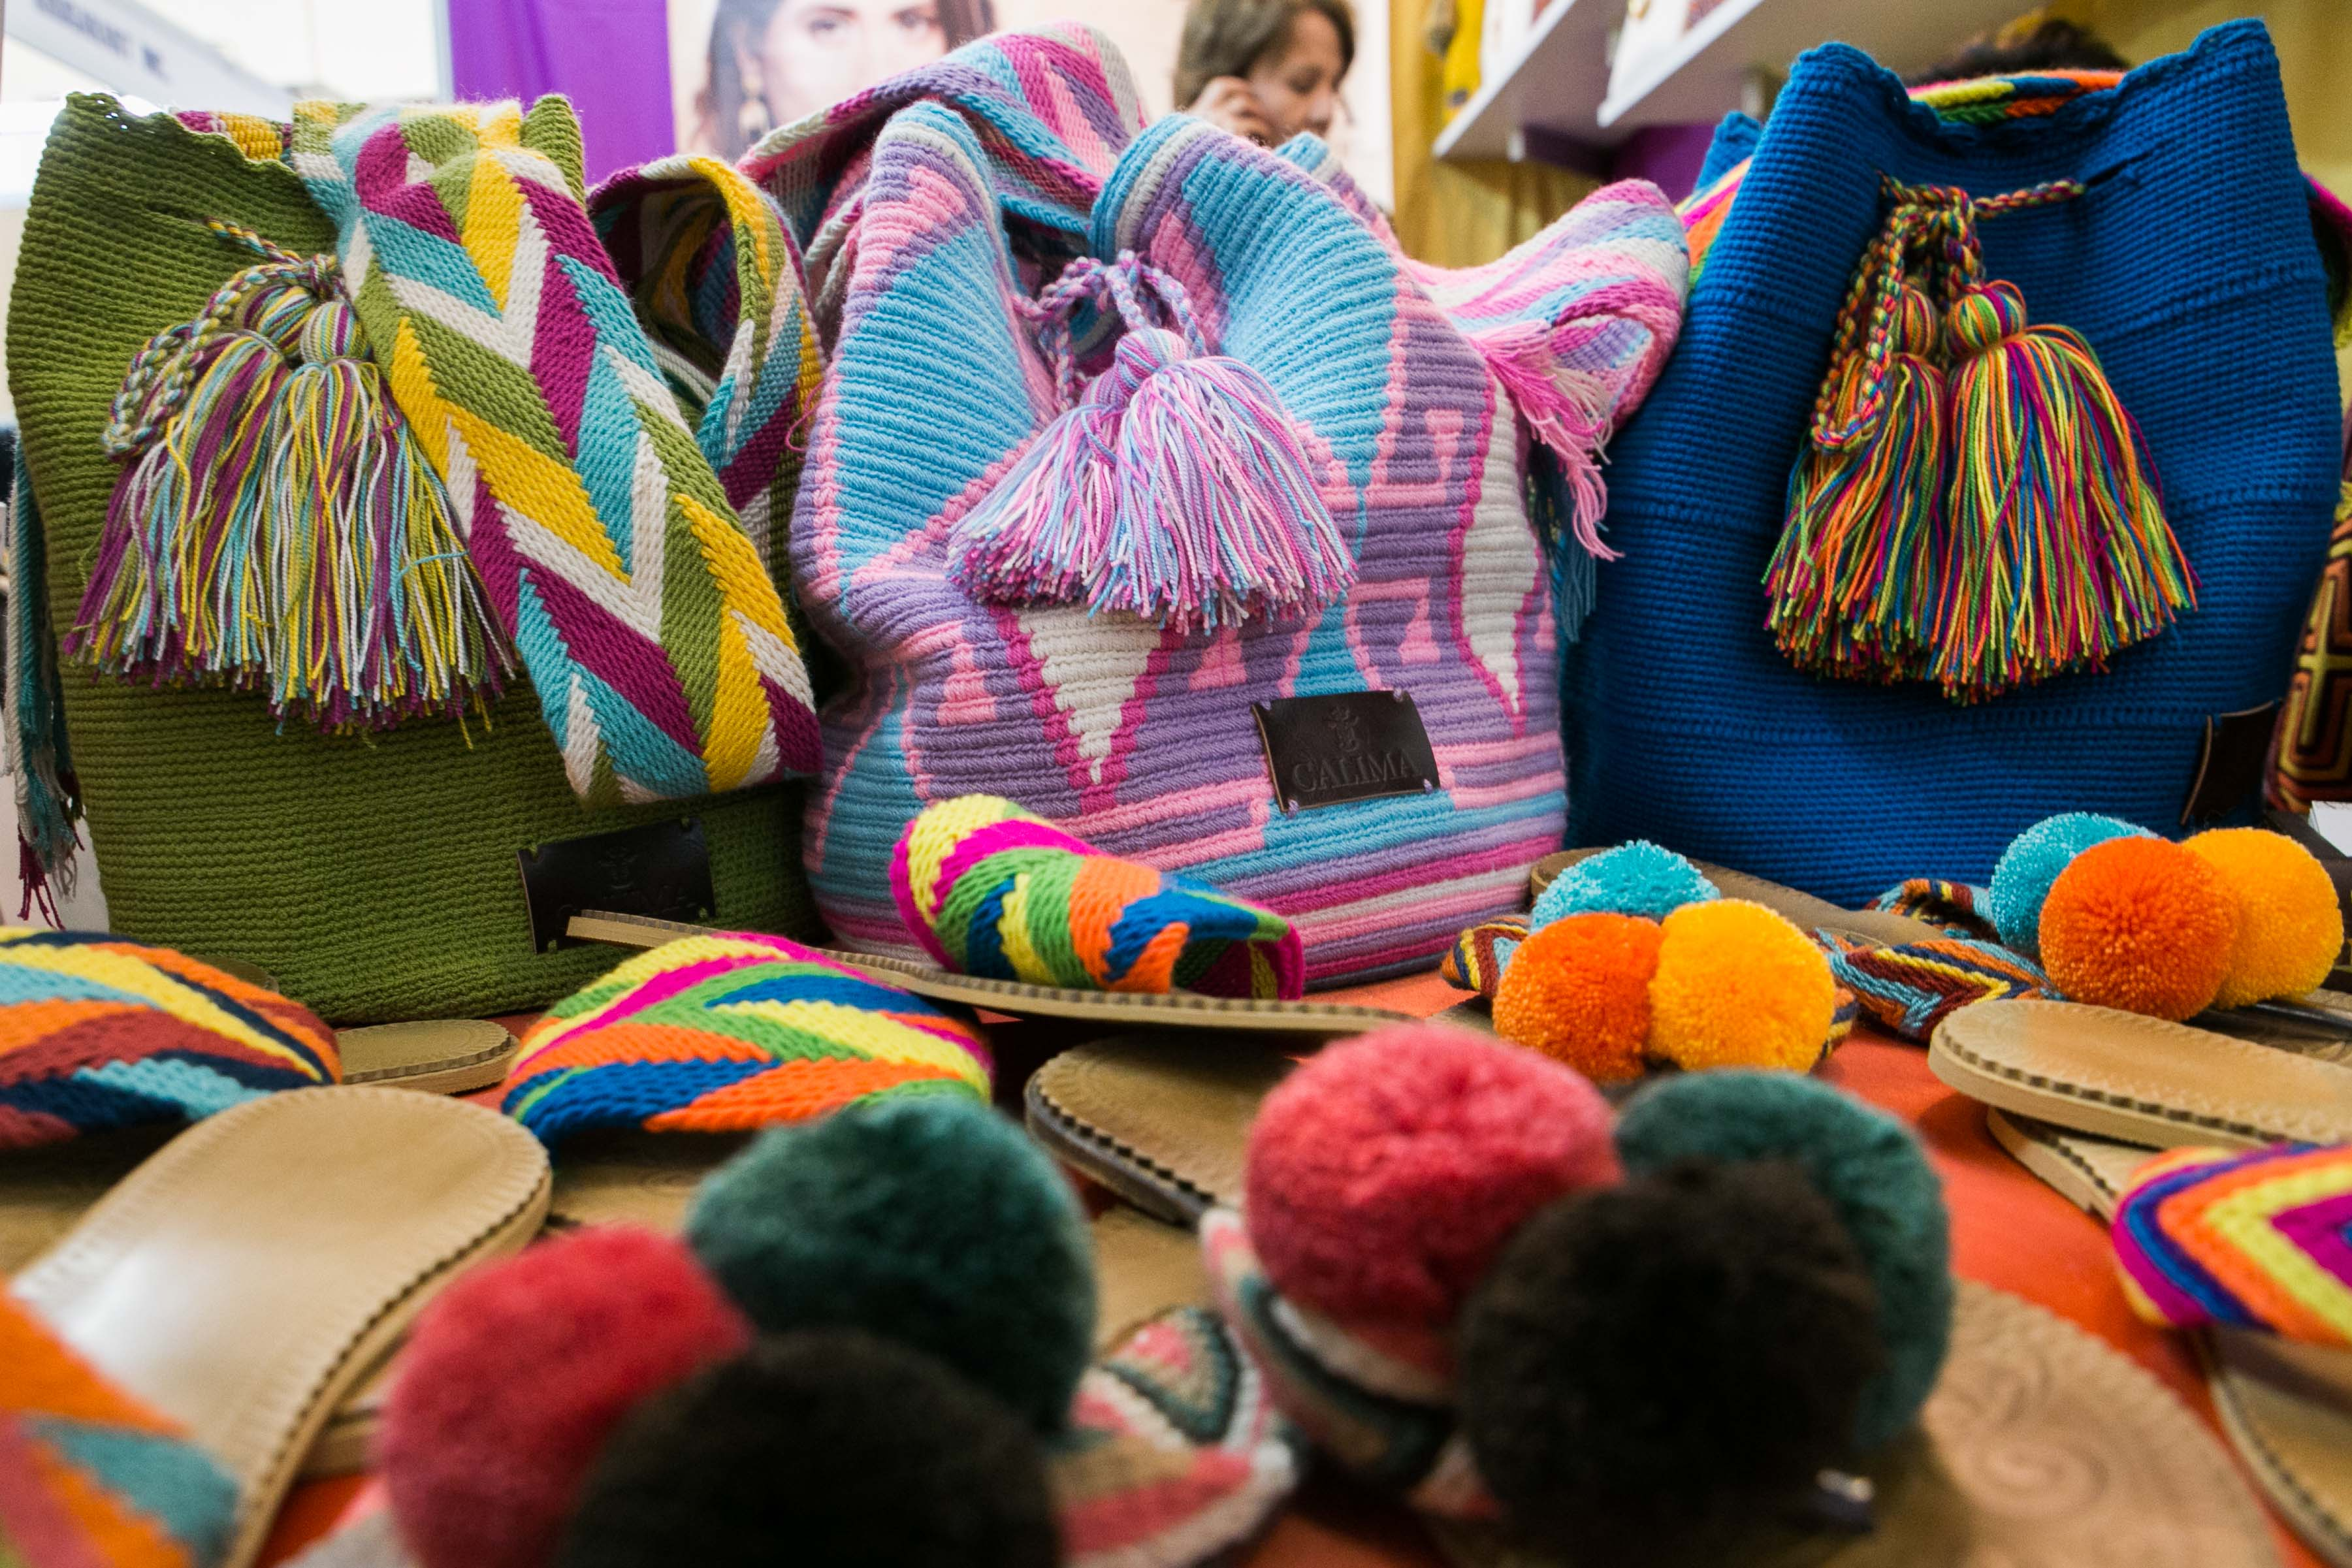 MOCHILA. These bags and sandals were handmade by the Wayuu tribe in Colombia. Parts of Calima's profits go to the community there. According to Hernandez, most of the women there earn money through woven products. Photo by Pat Nabong/Rappler